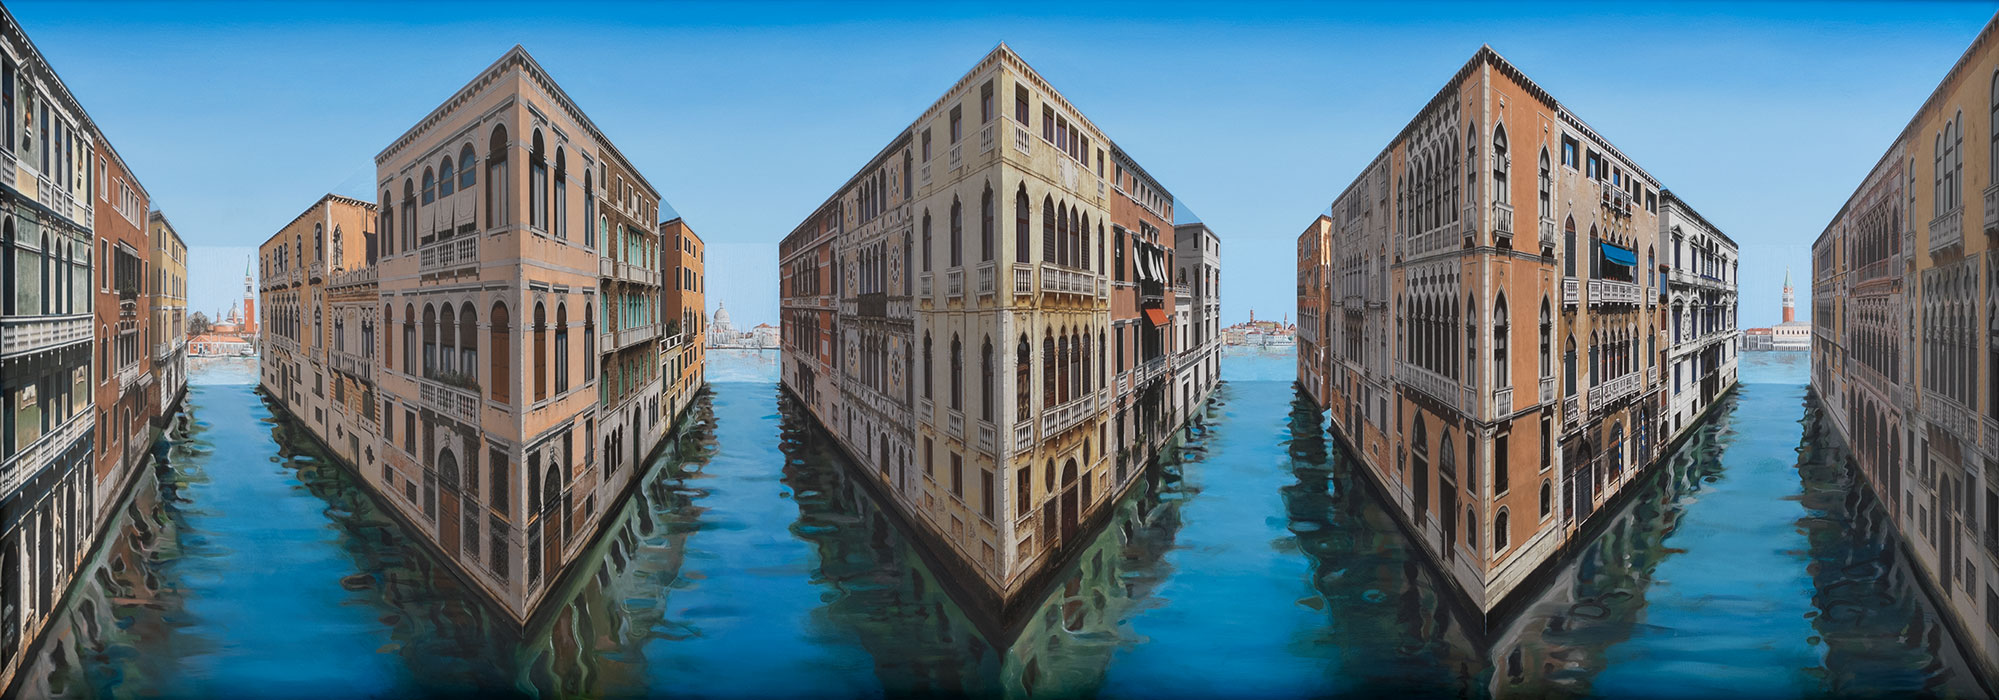 Vision of Venice <p>2018 | Edition 5 | 75.5 x 218 x 27.5 cm / 29 ¾ x 85 ⅞ x 10 ⅞ in</p>